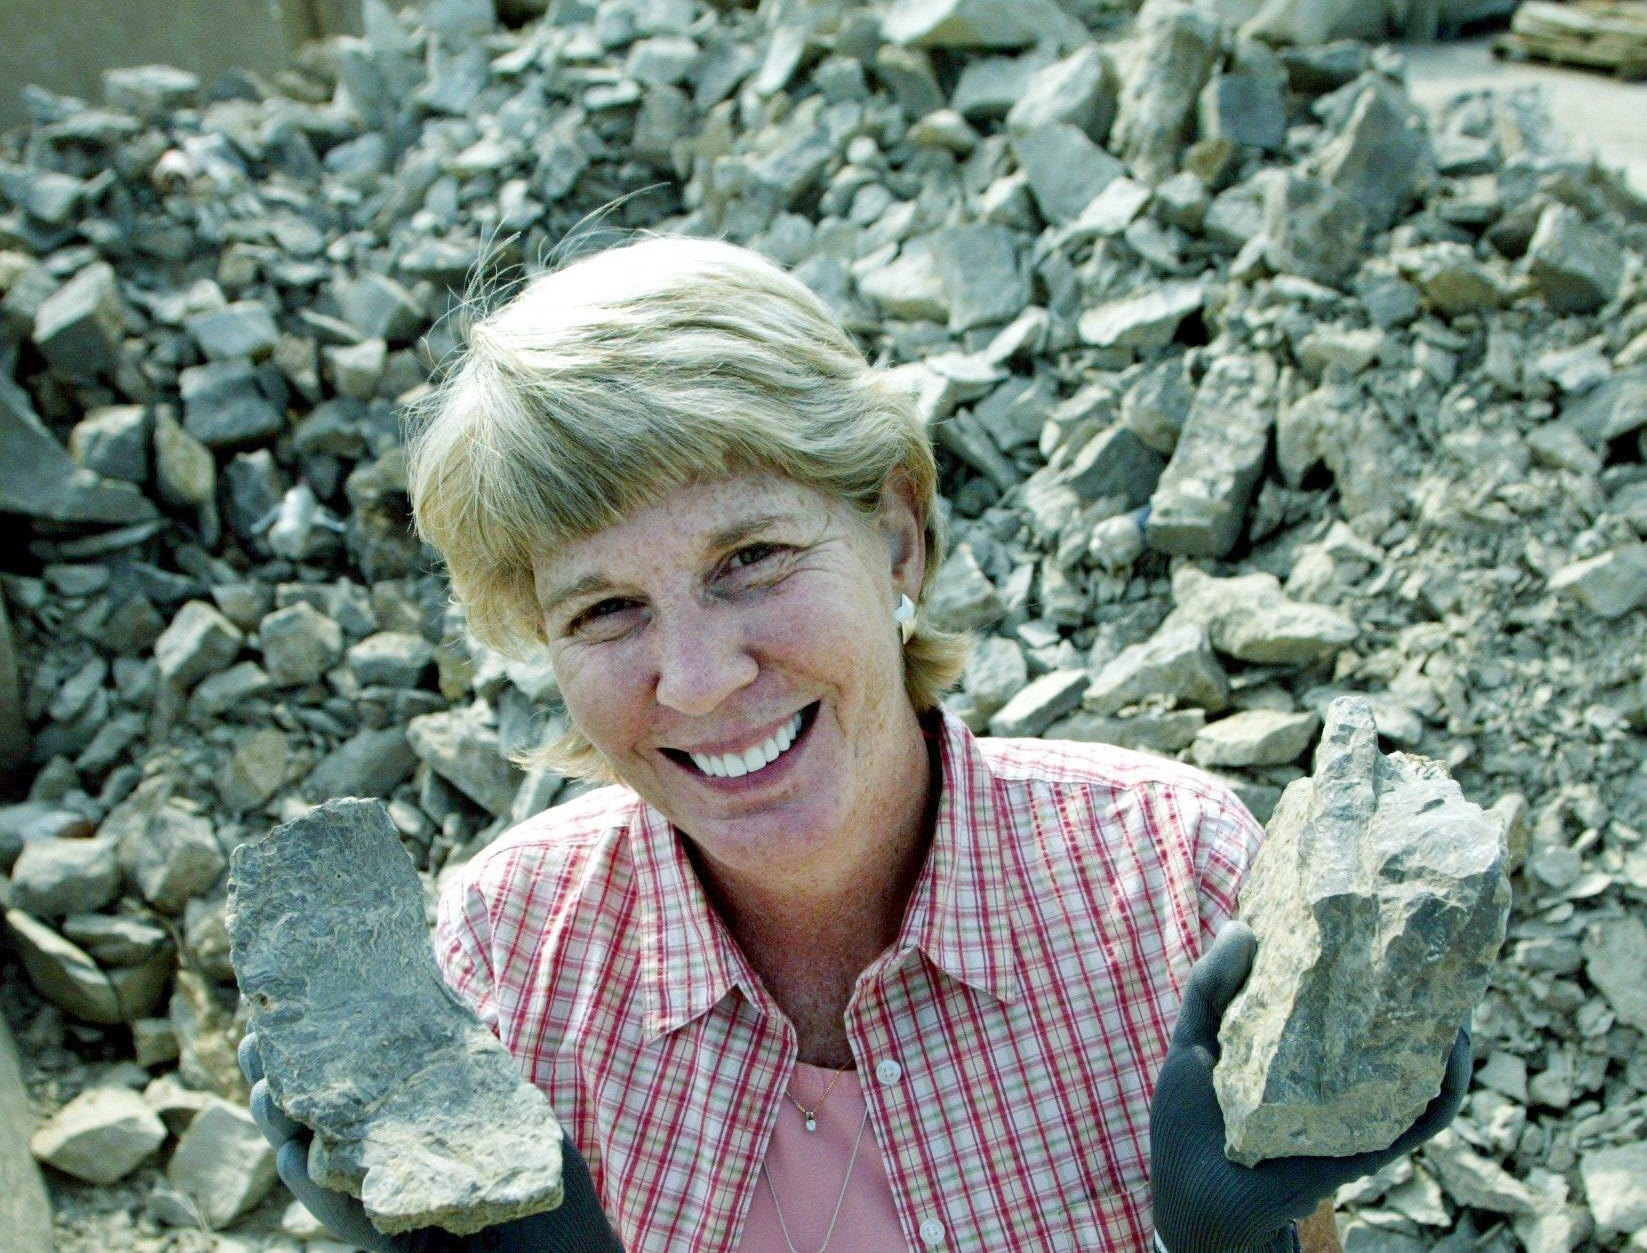 Mary Hance visits the free rock pile at Jones Stones in Nashville on July 17, 2006, for a story on most frequently asked questions of Ms. Cheap.